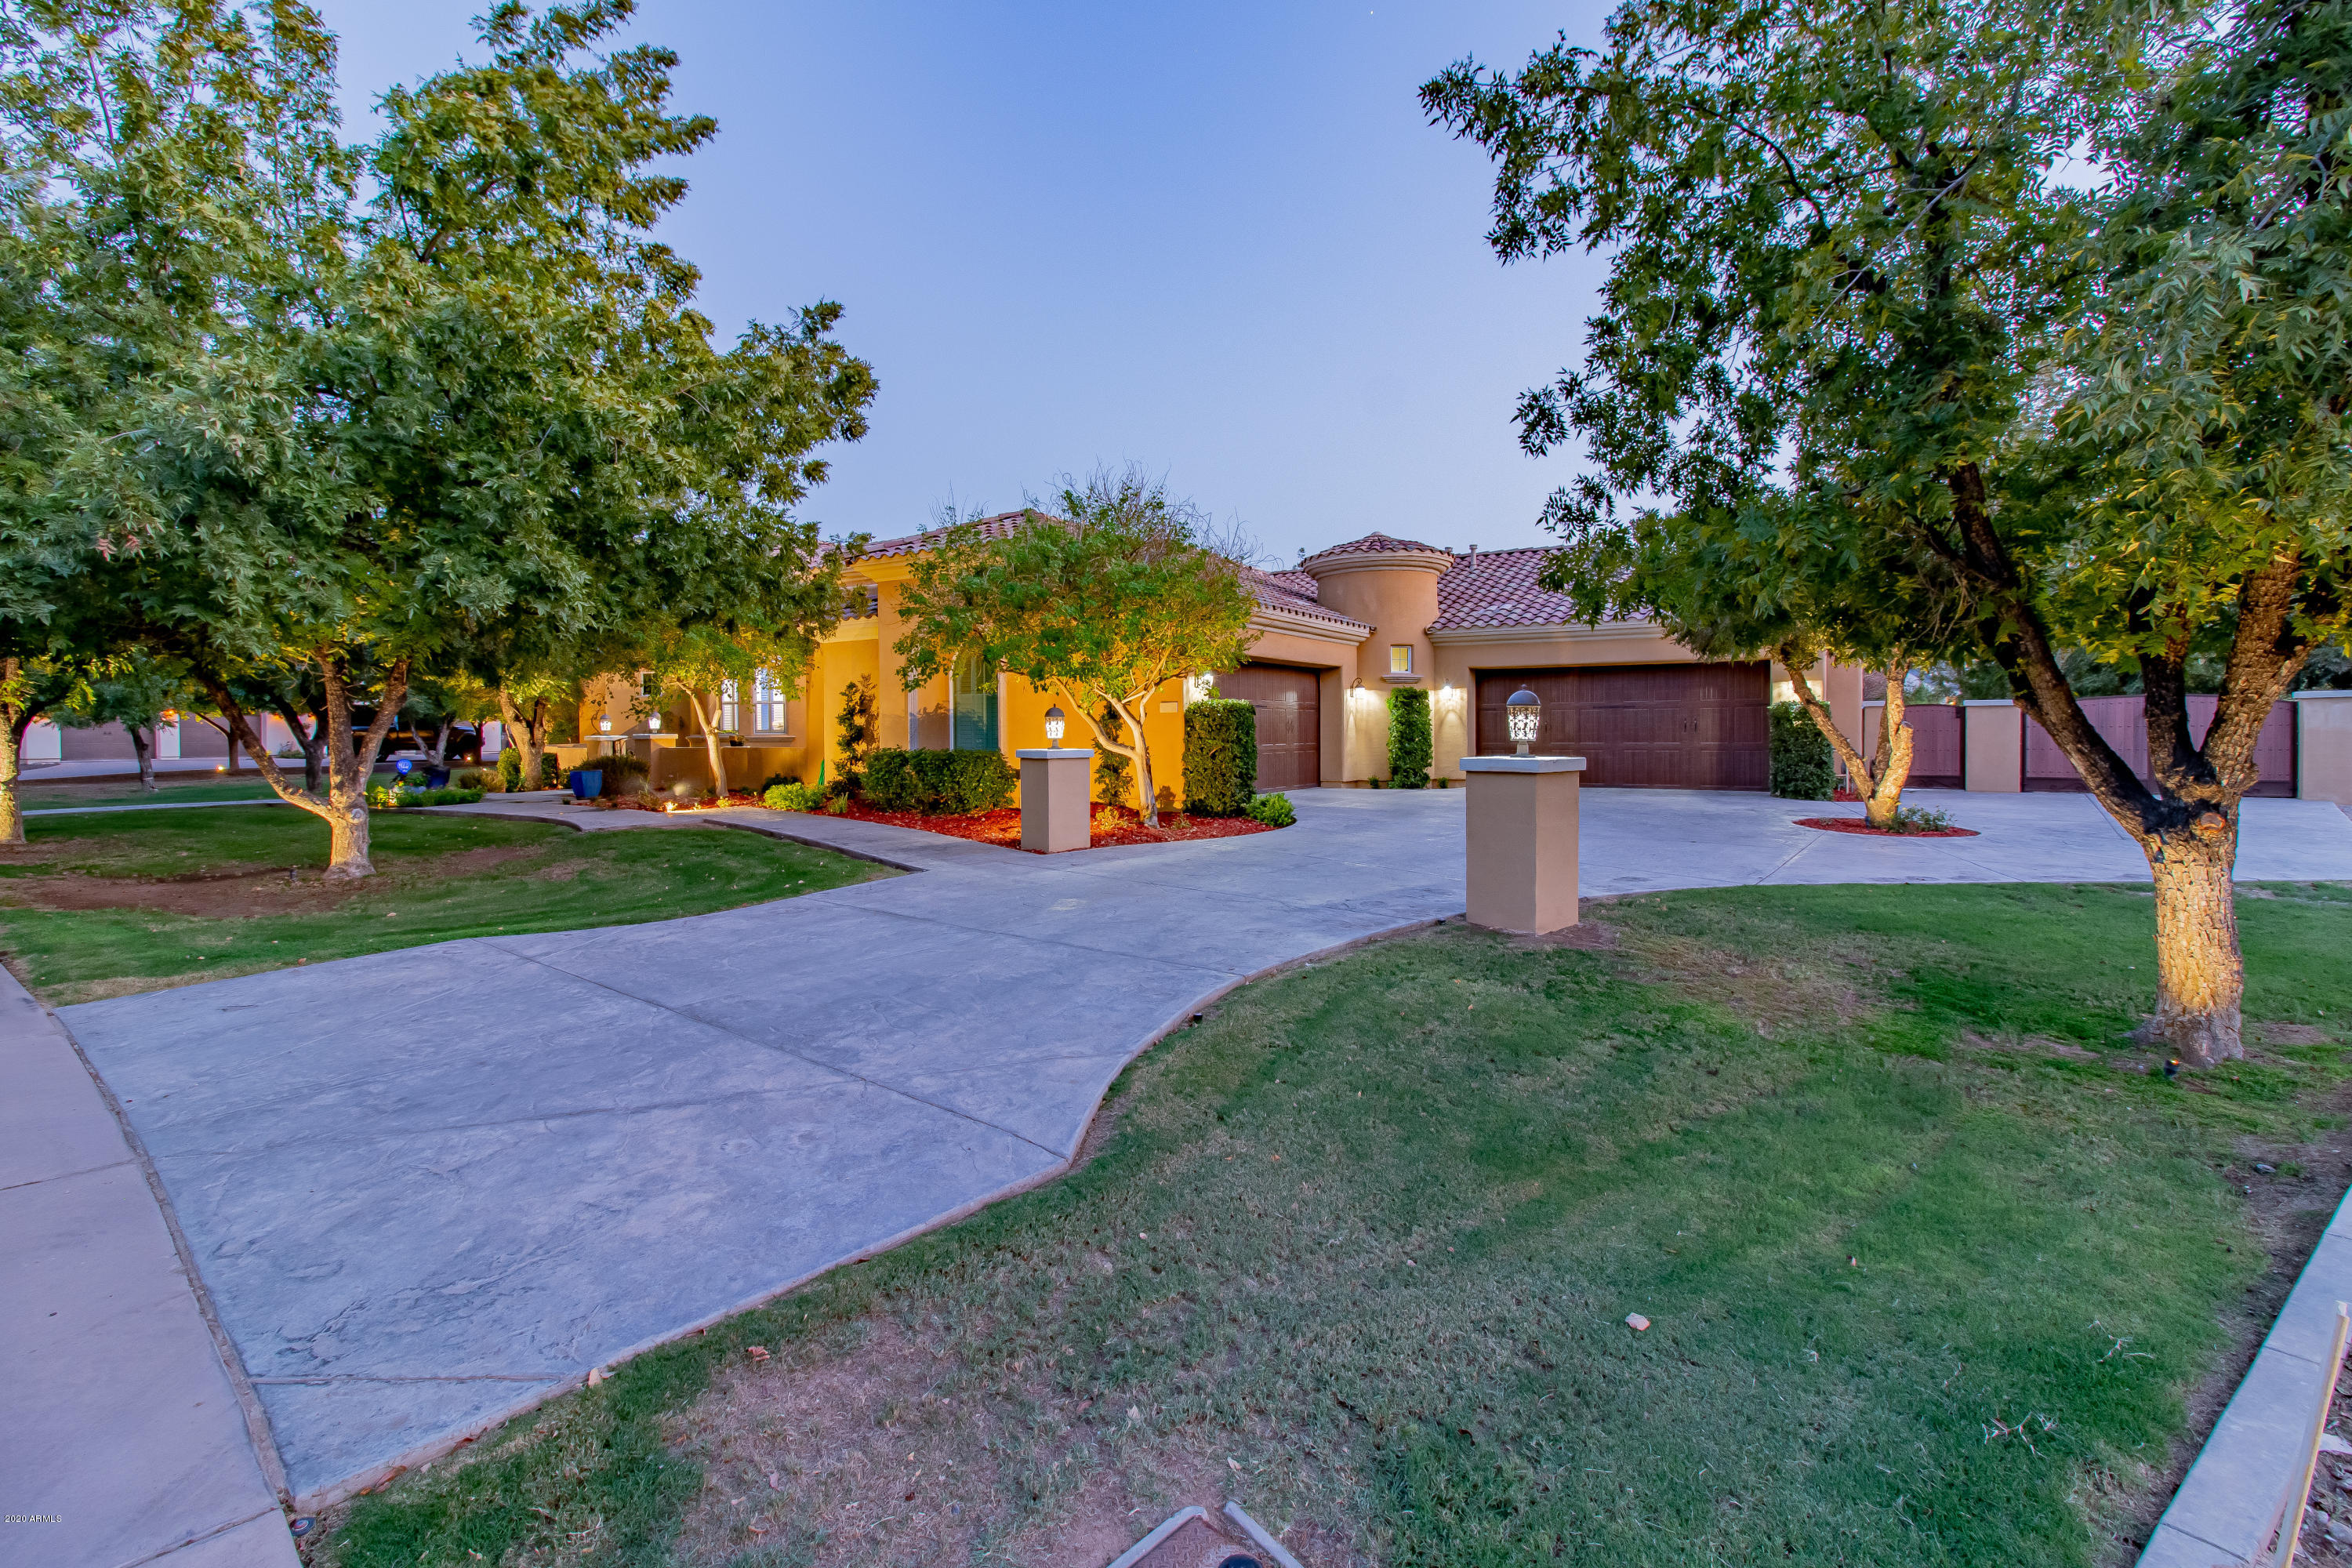 20575 VIA DE ARBOLES --, Queen Creek, Arizona 85142, 5 Bedrooms Bedrooms, ,6 BathroomsBathrooms,Residential,For Sale,VIA DE ARBOLES,6137896